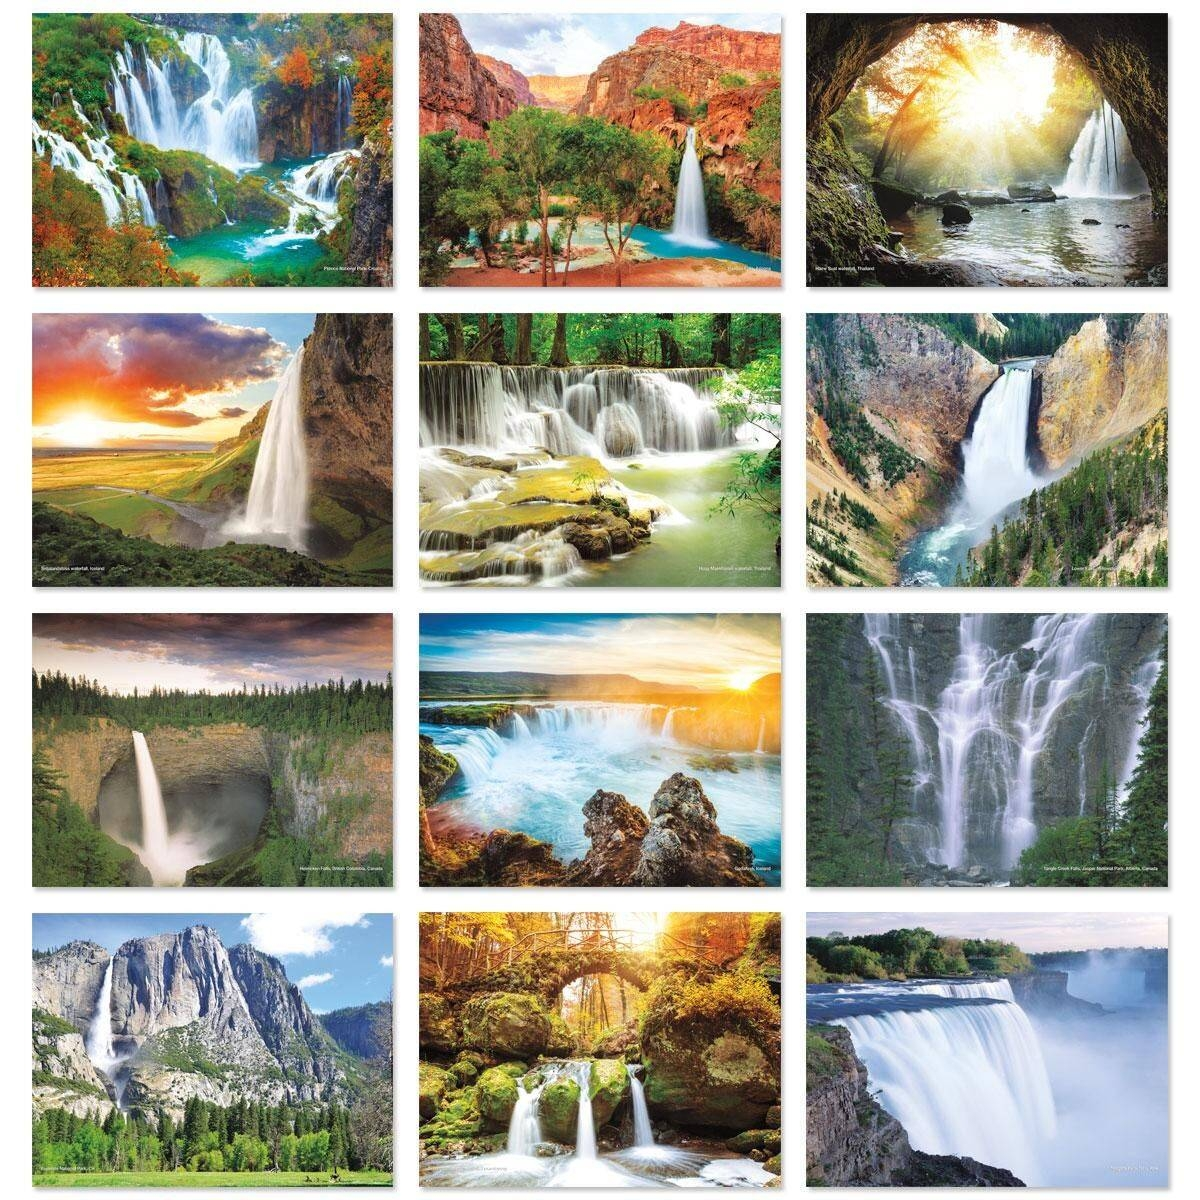 2018 Waterfalls Wall Calendar | Current Catalog Regarding Most Current Waterfall Wall Art (View 2 of 20)